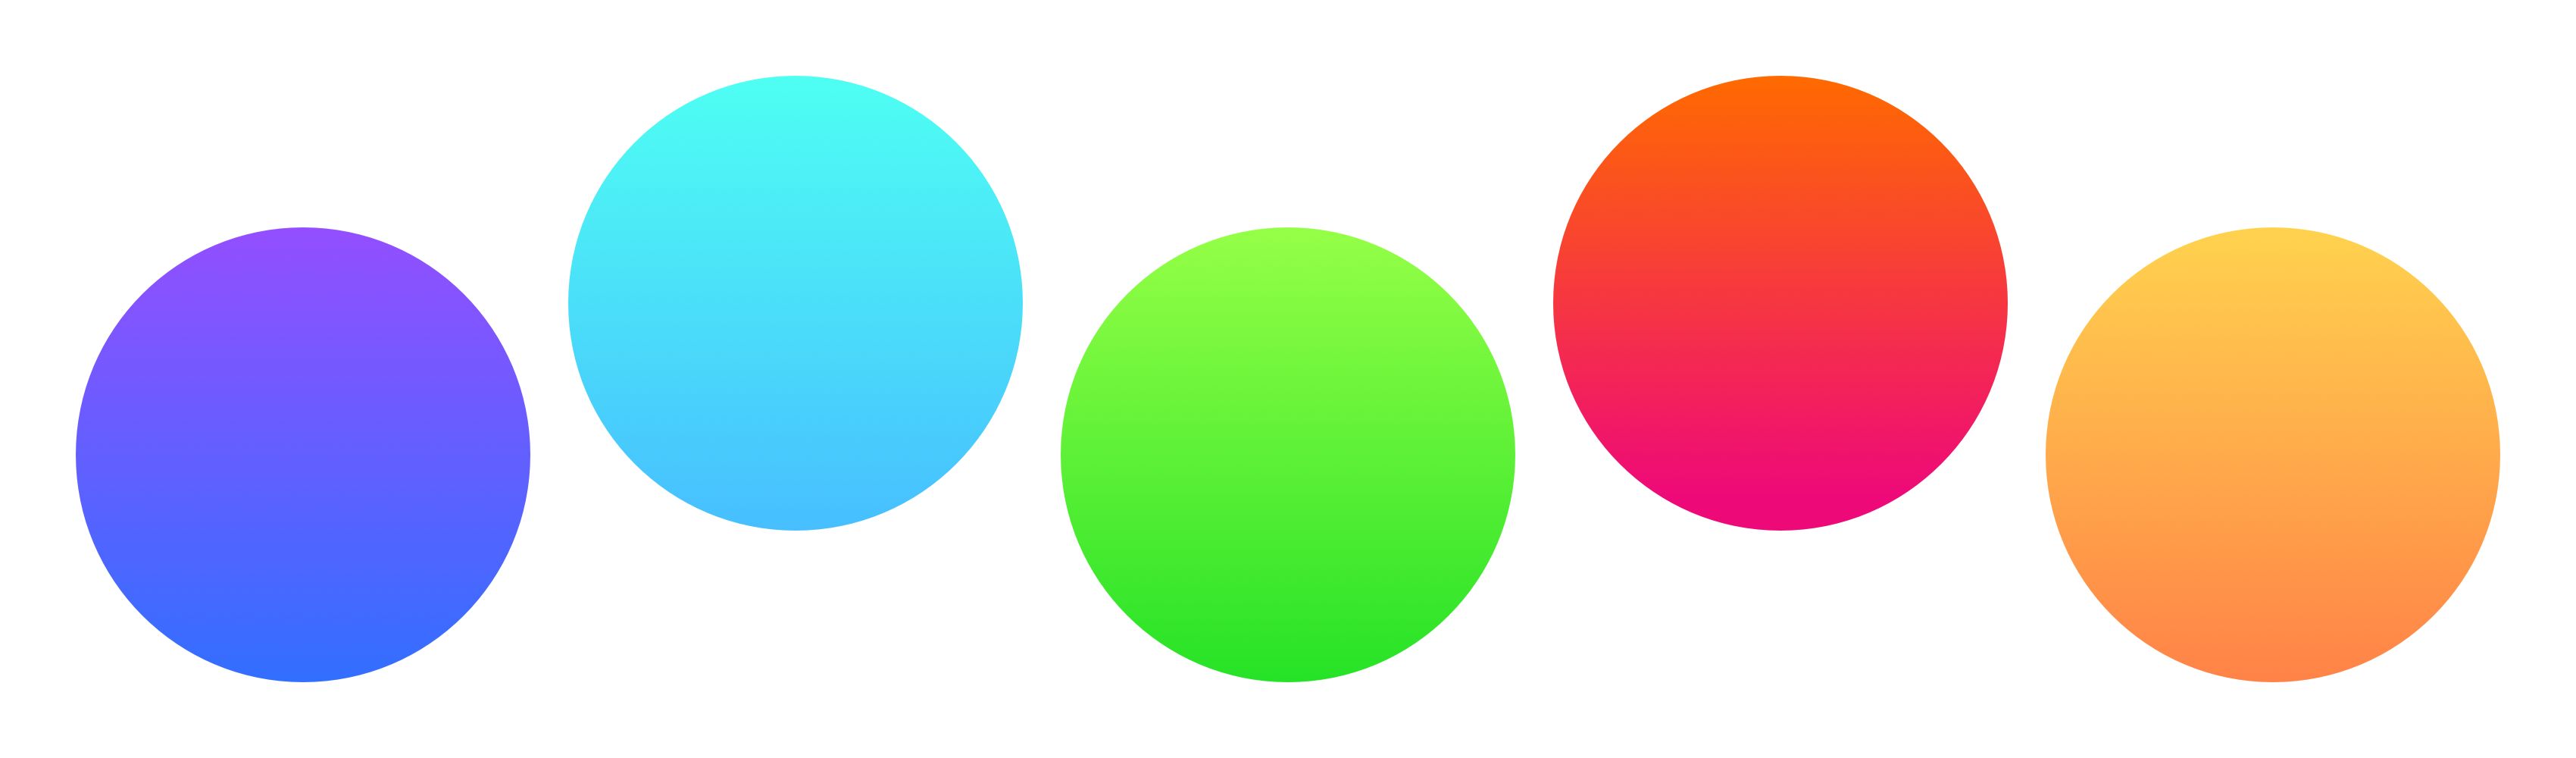 How to Create a Bubble Selection Animation on Android